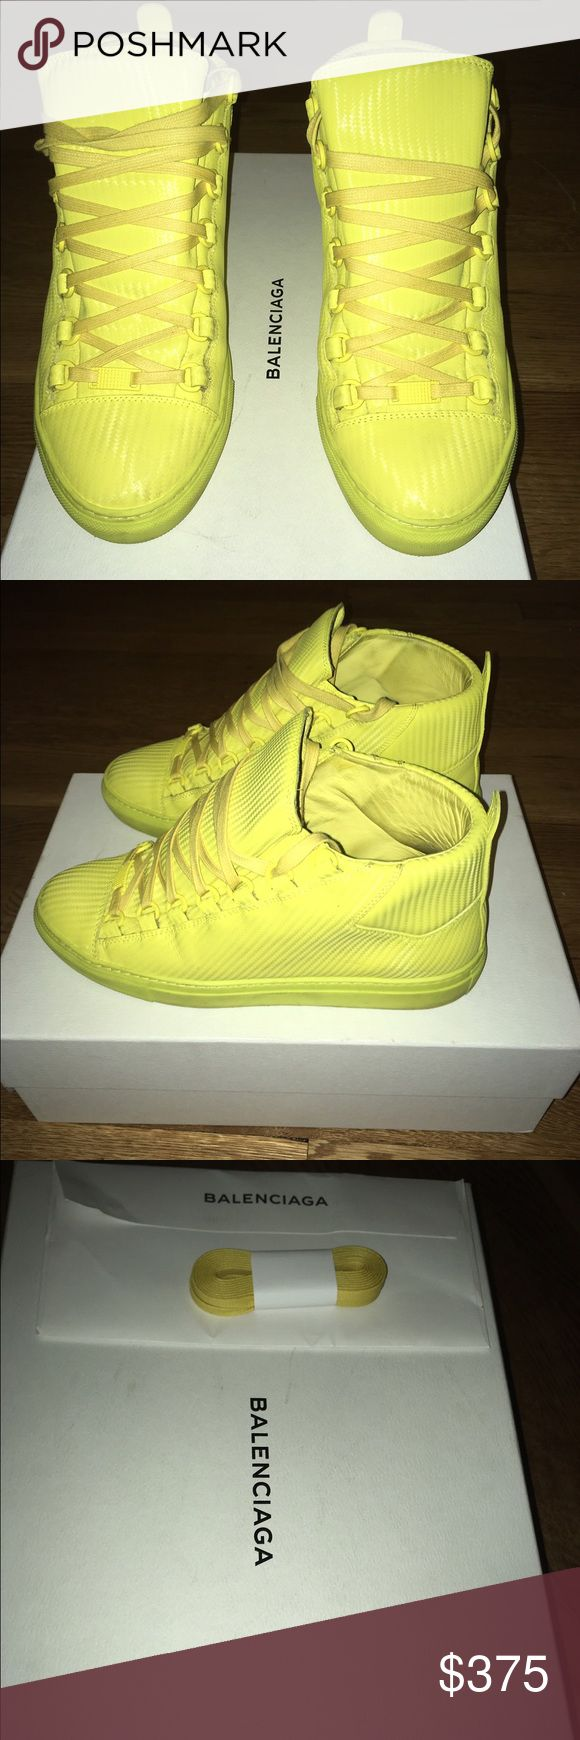 """Balenciaga 7 US EUR 40 Neon Yellow 100%Real Mat palladium metal finishing Metal tab with guillochet design at front Tone-on-tone laces, sole and lining Balenciaga logo on the tongue 5 mm arch Insole: Width 11.02 inches / Length 3.54 inches Made in Spain Please note this item runs large, we suggest you take a full size down for a more appropriate fit"""" Balenciaga Shoes Sneakers"""